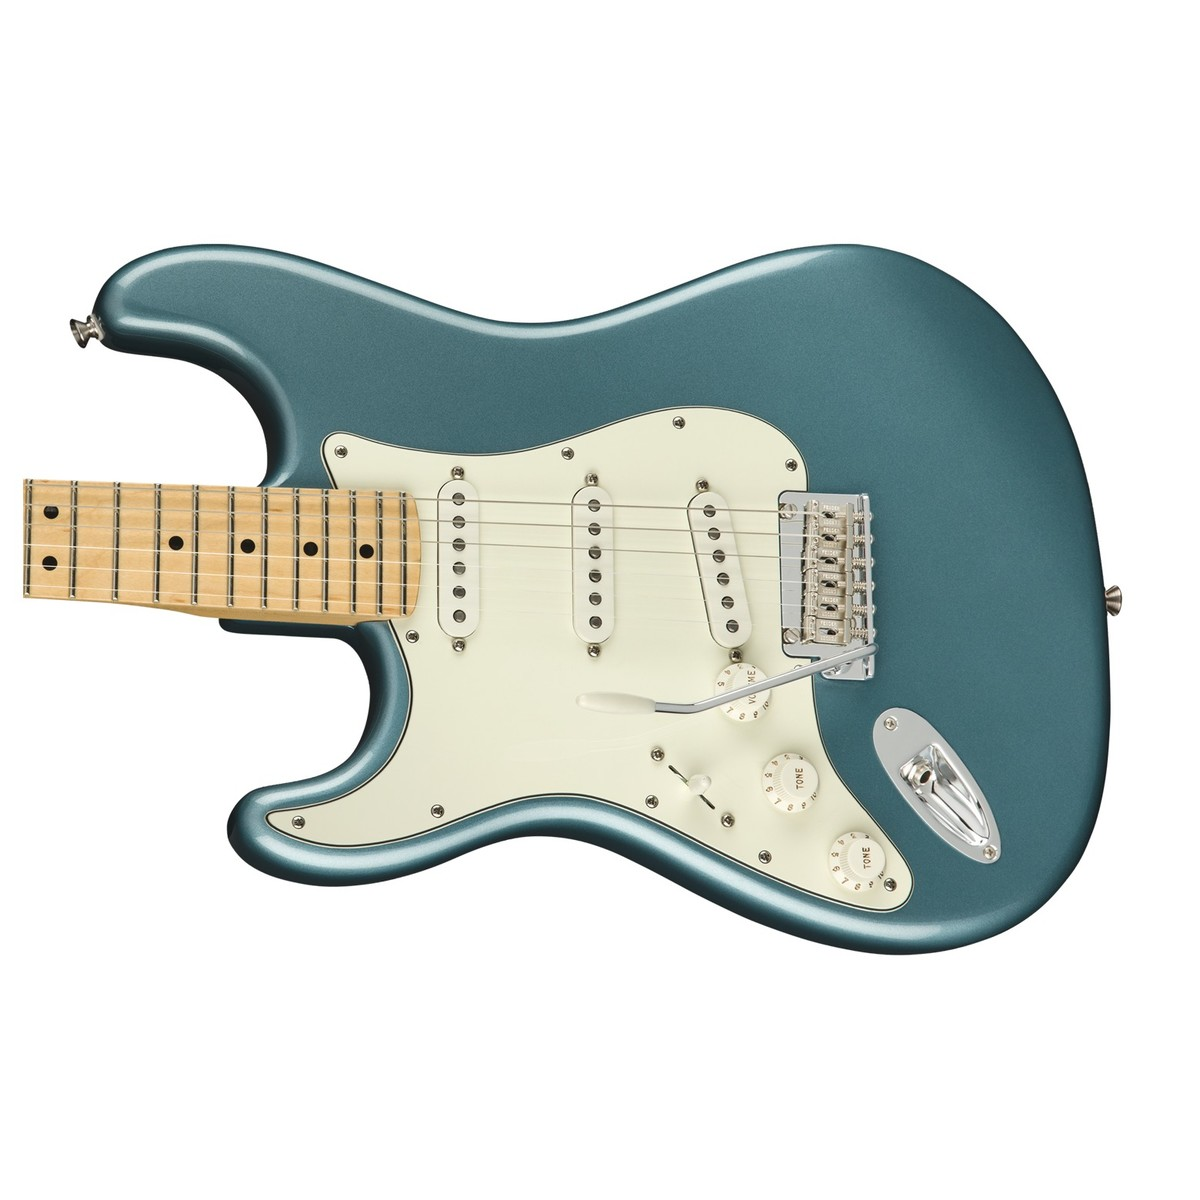 Fender Player Stratocaster MN Left Handed, Tidepool at Gear4music.com